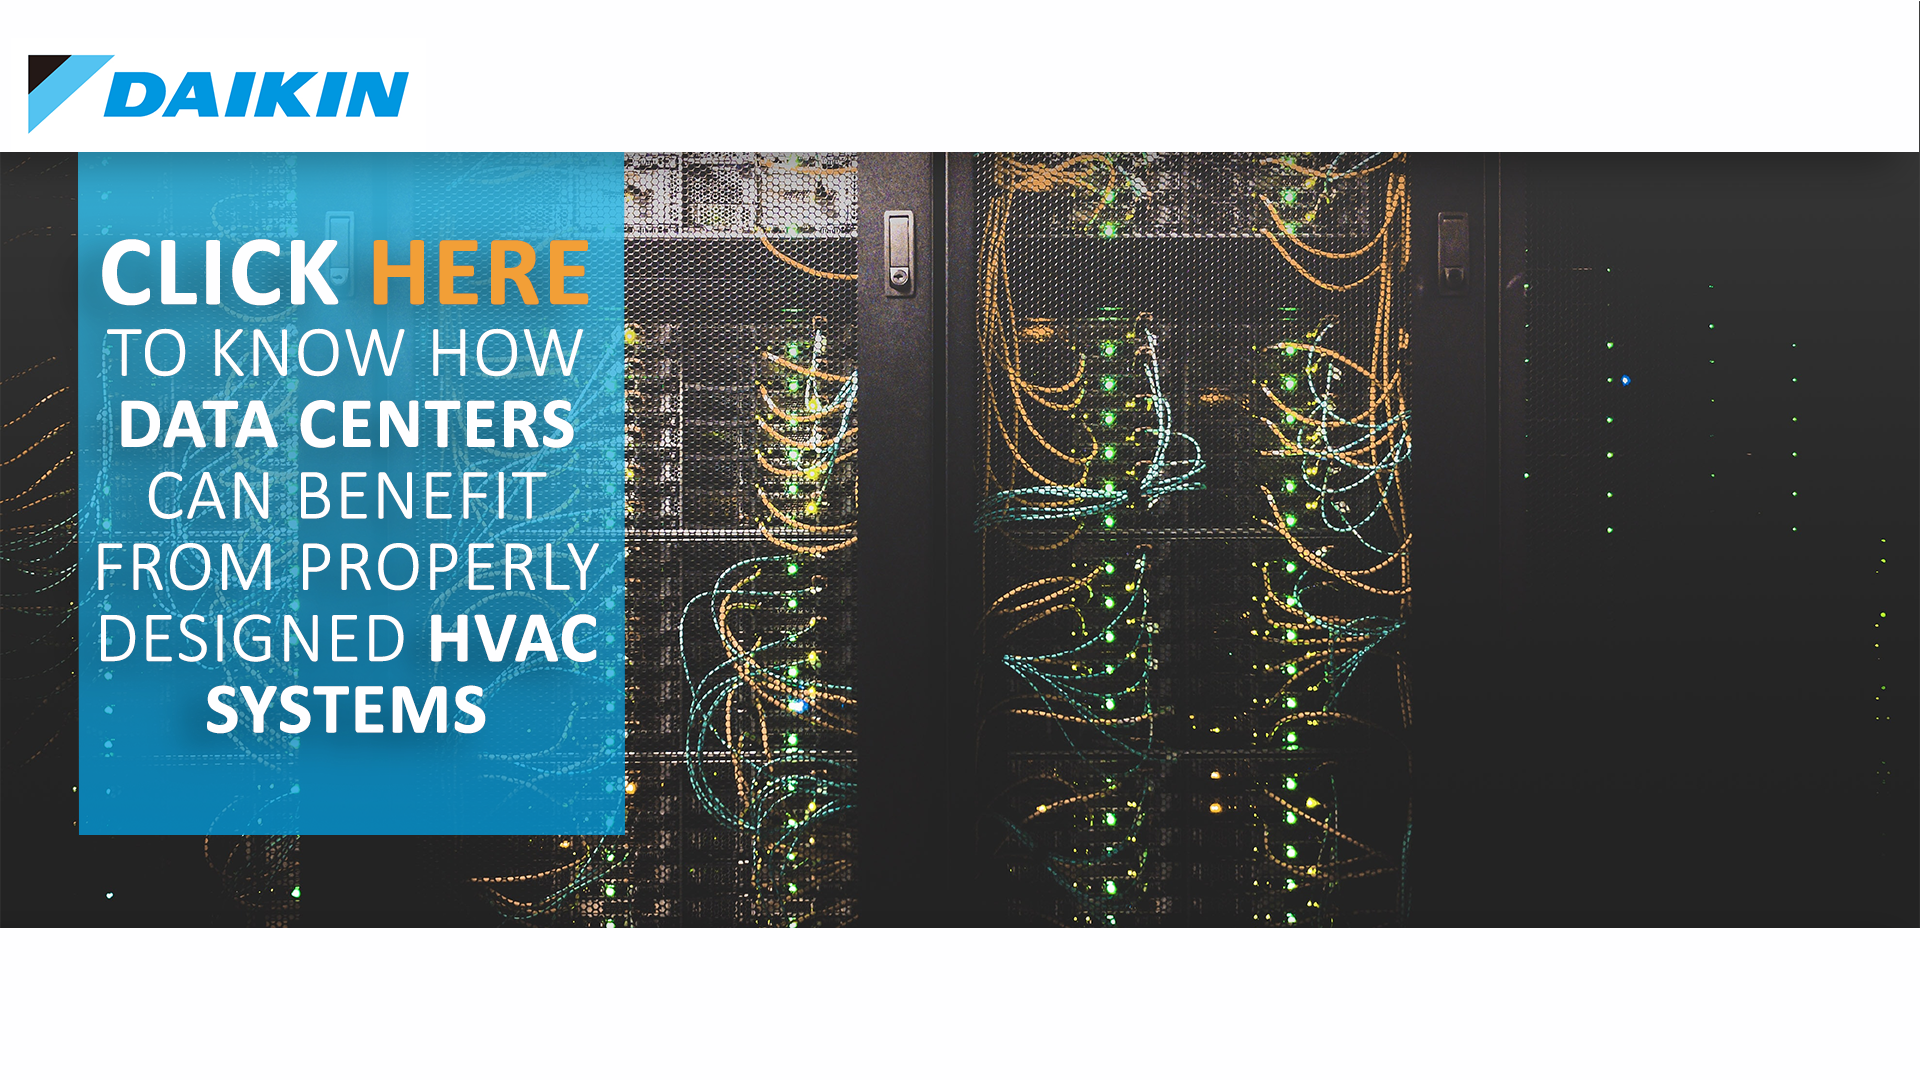 HVAC systems for Data Centers